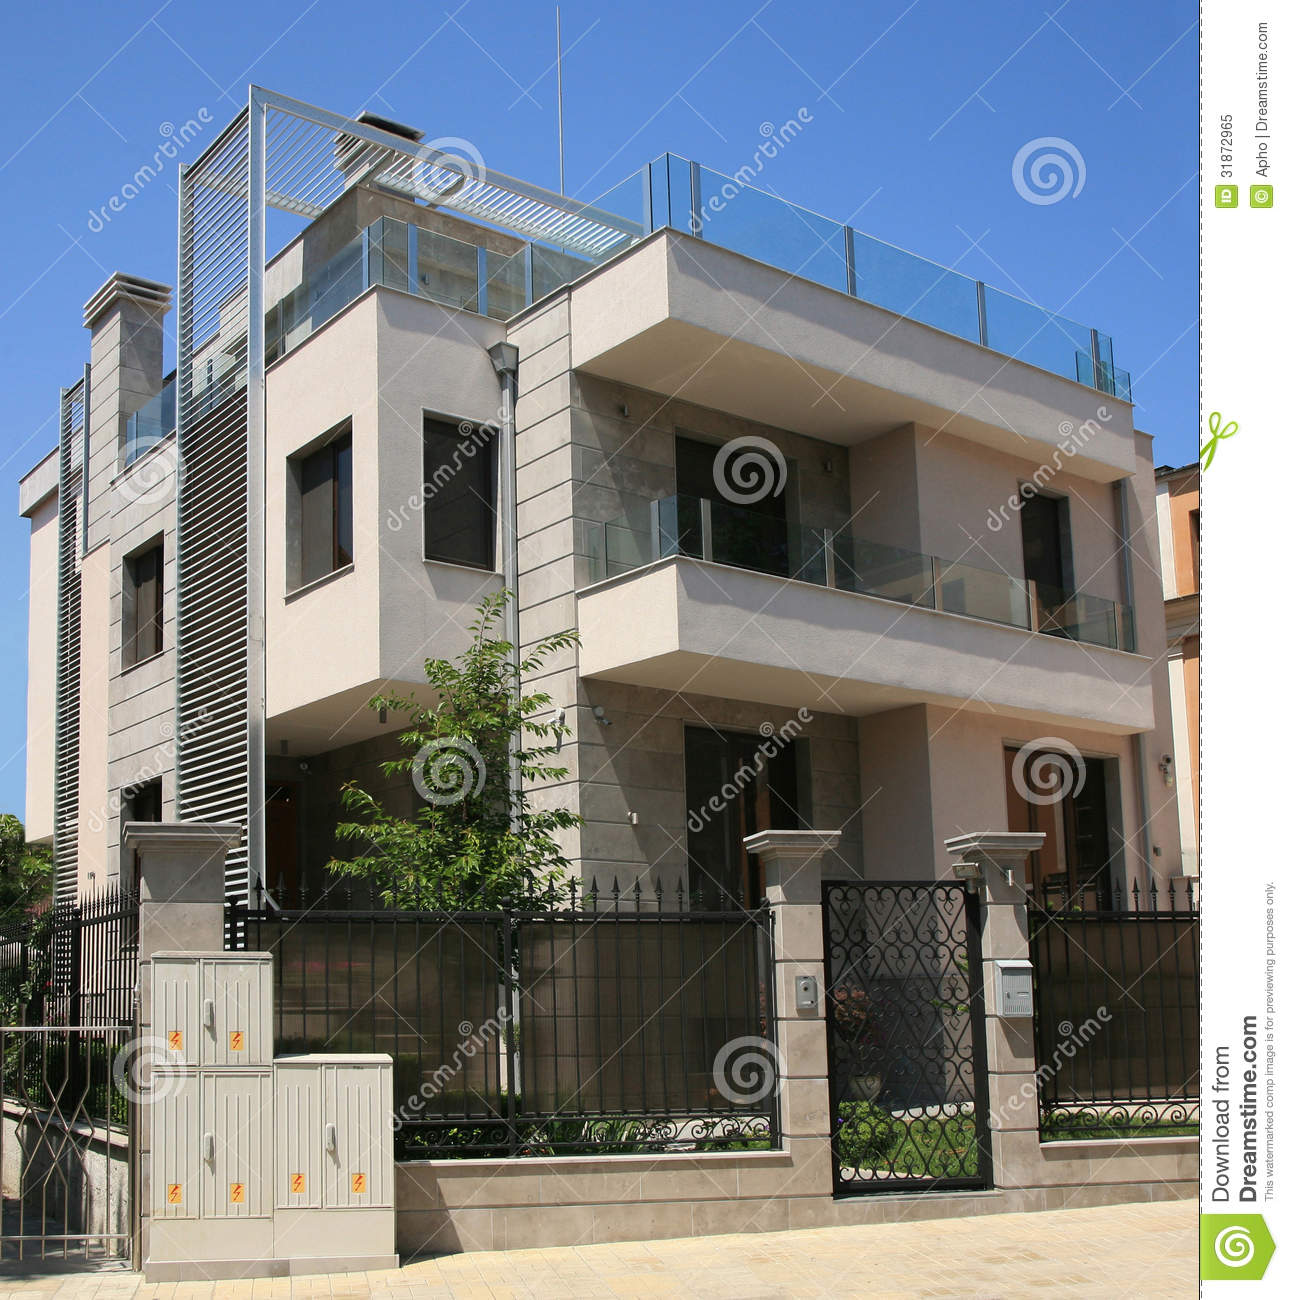 Modern house royalty free stock photo image 31872965 for Building outer design